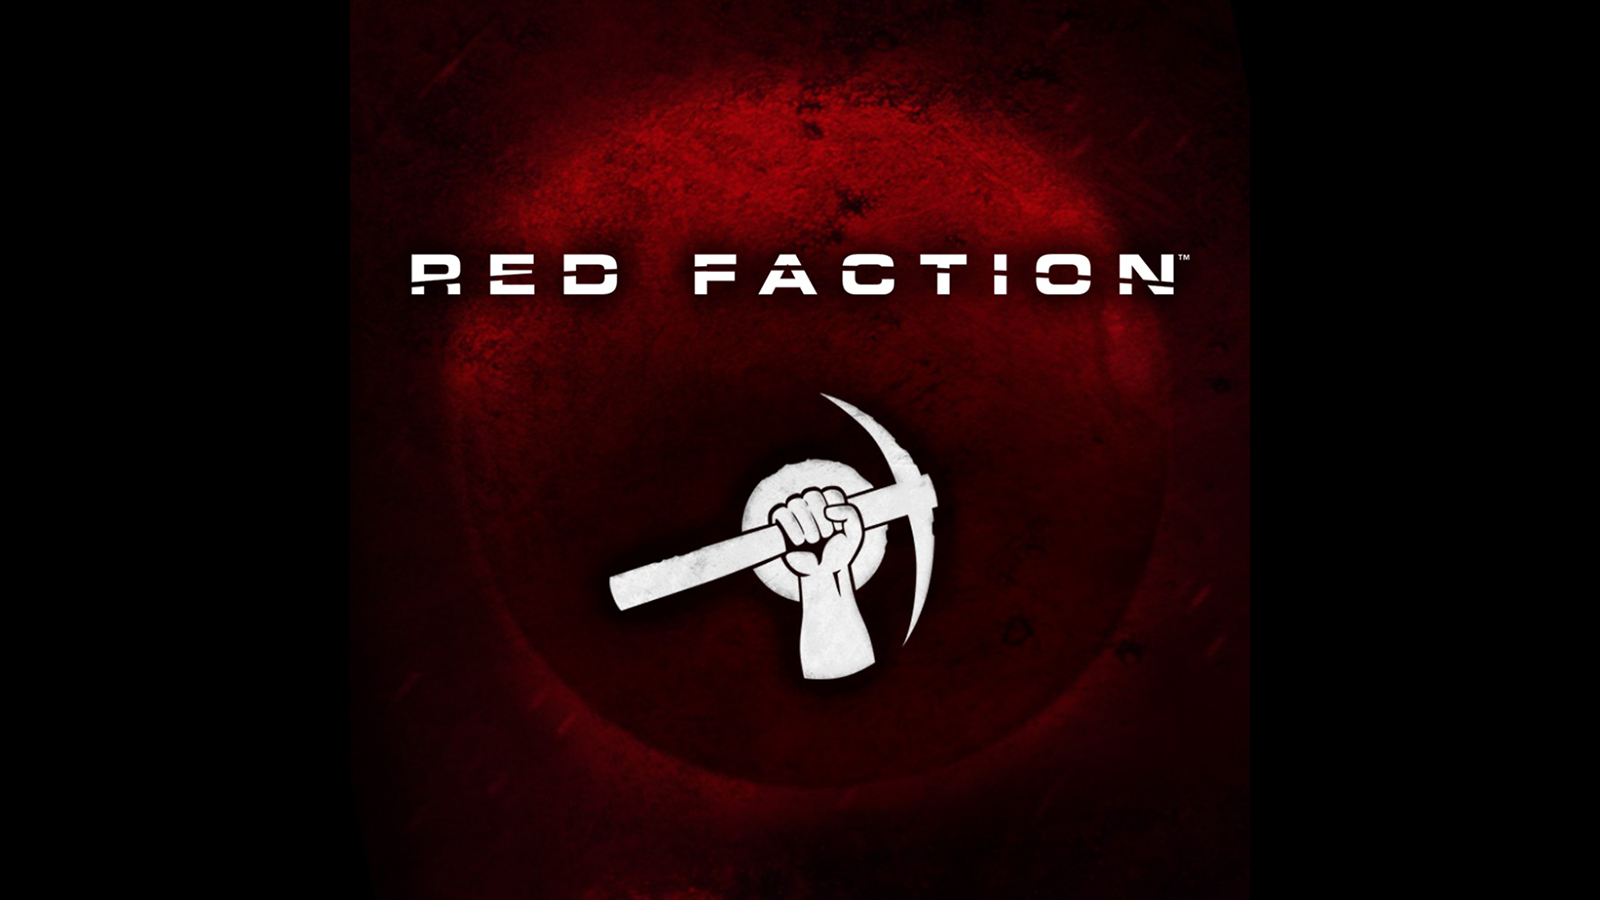 Faction Images red faction game | ps4 - playstation